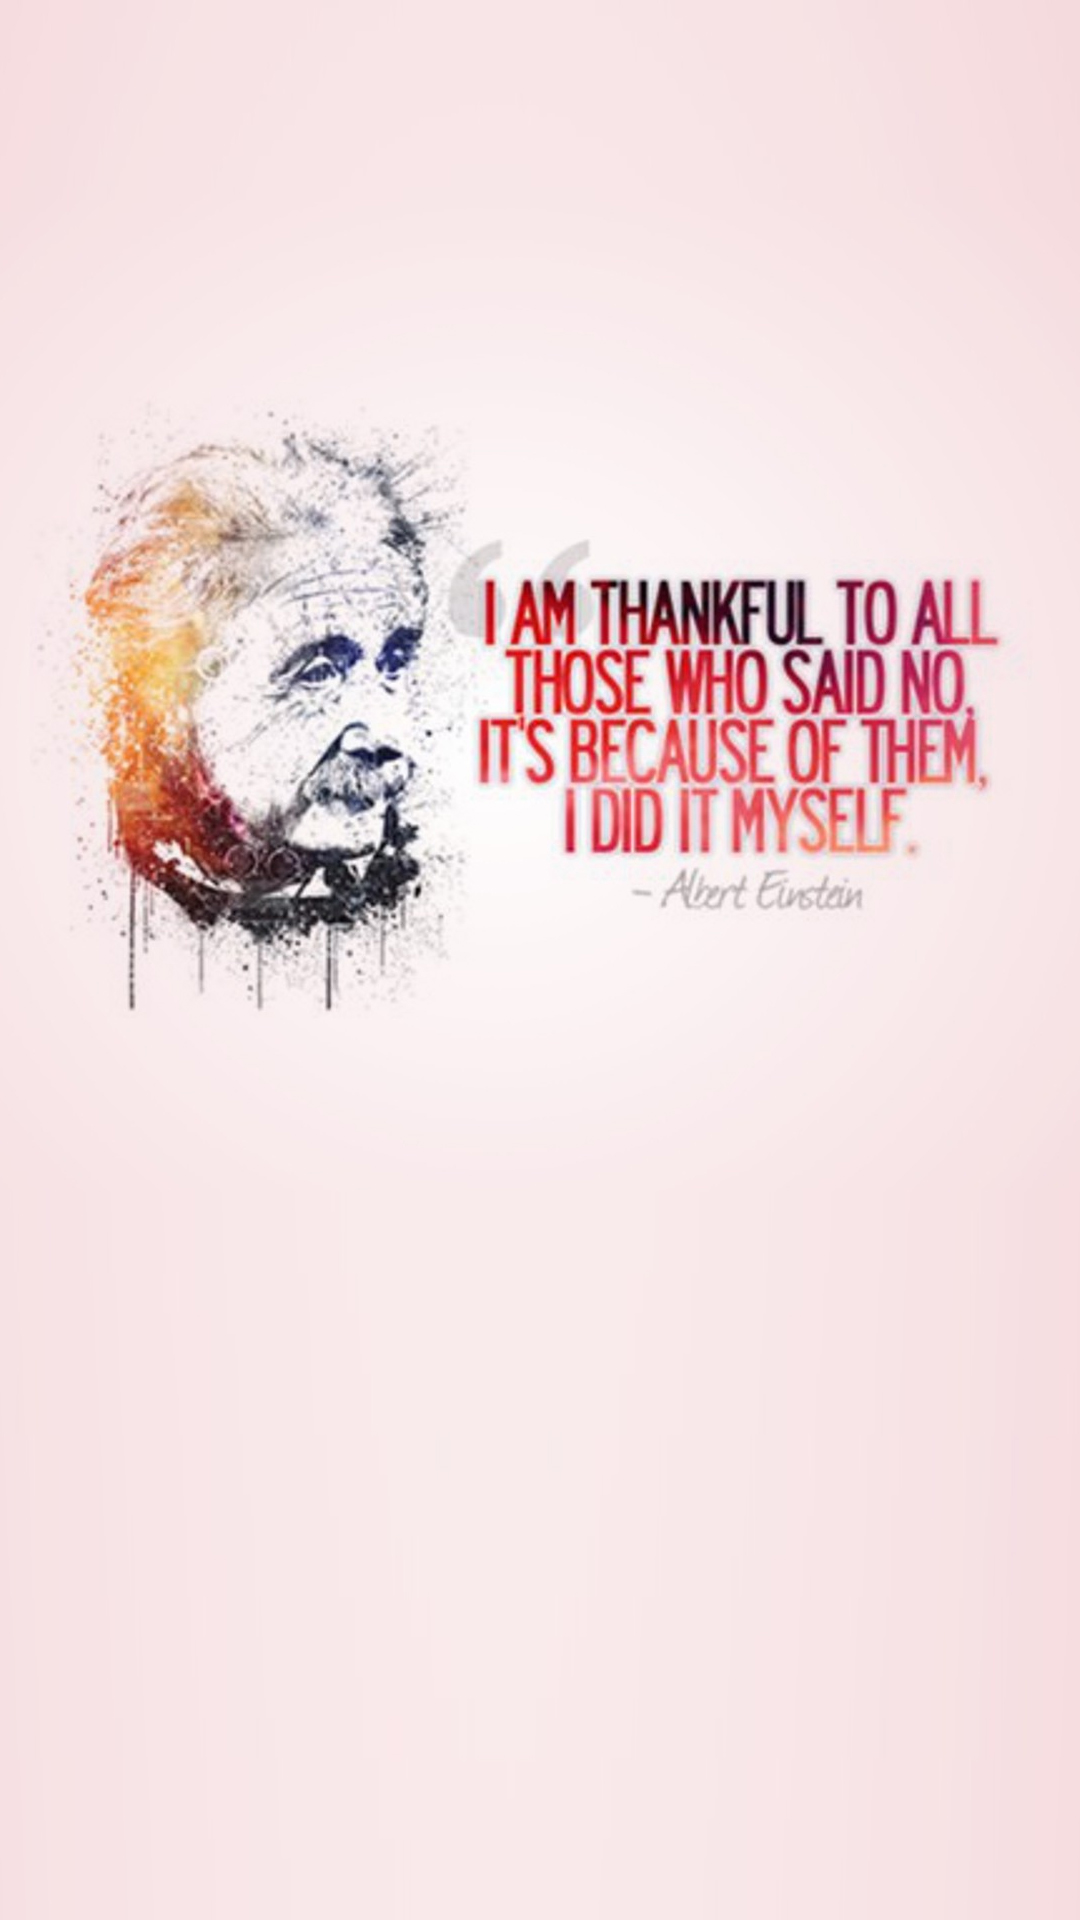 Albert Einstein Wallpaper Quotes Albert Einstein Smartphone Wallpapers Hd ⋆ Getphotos